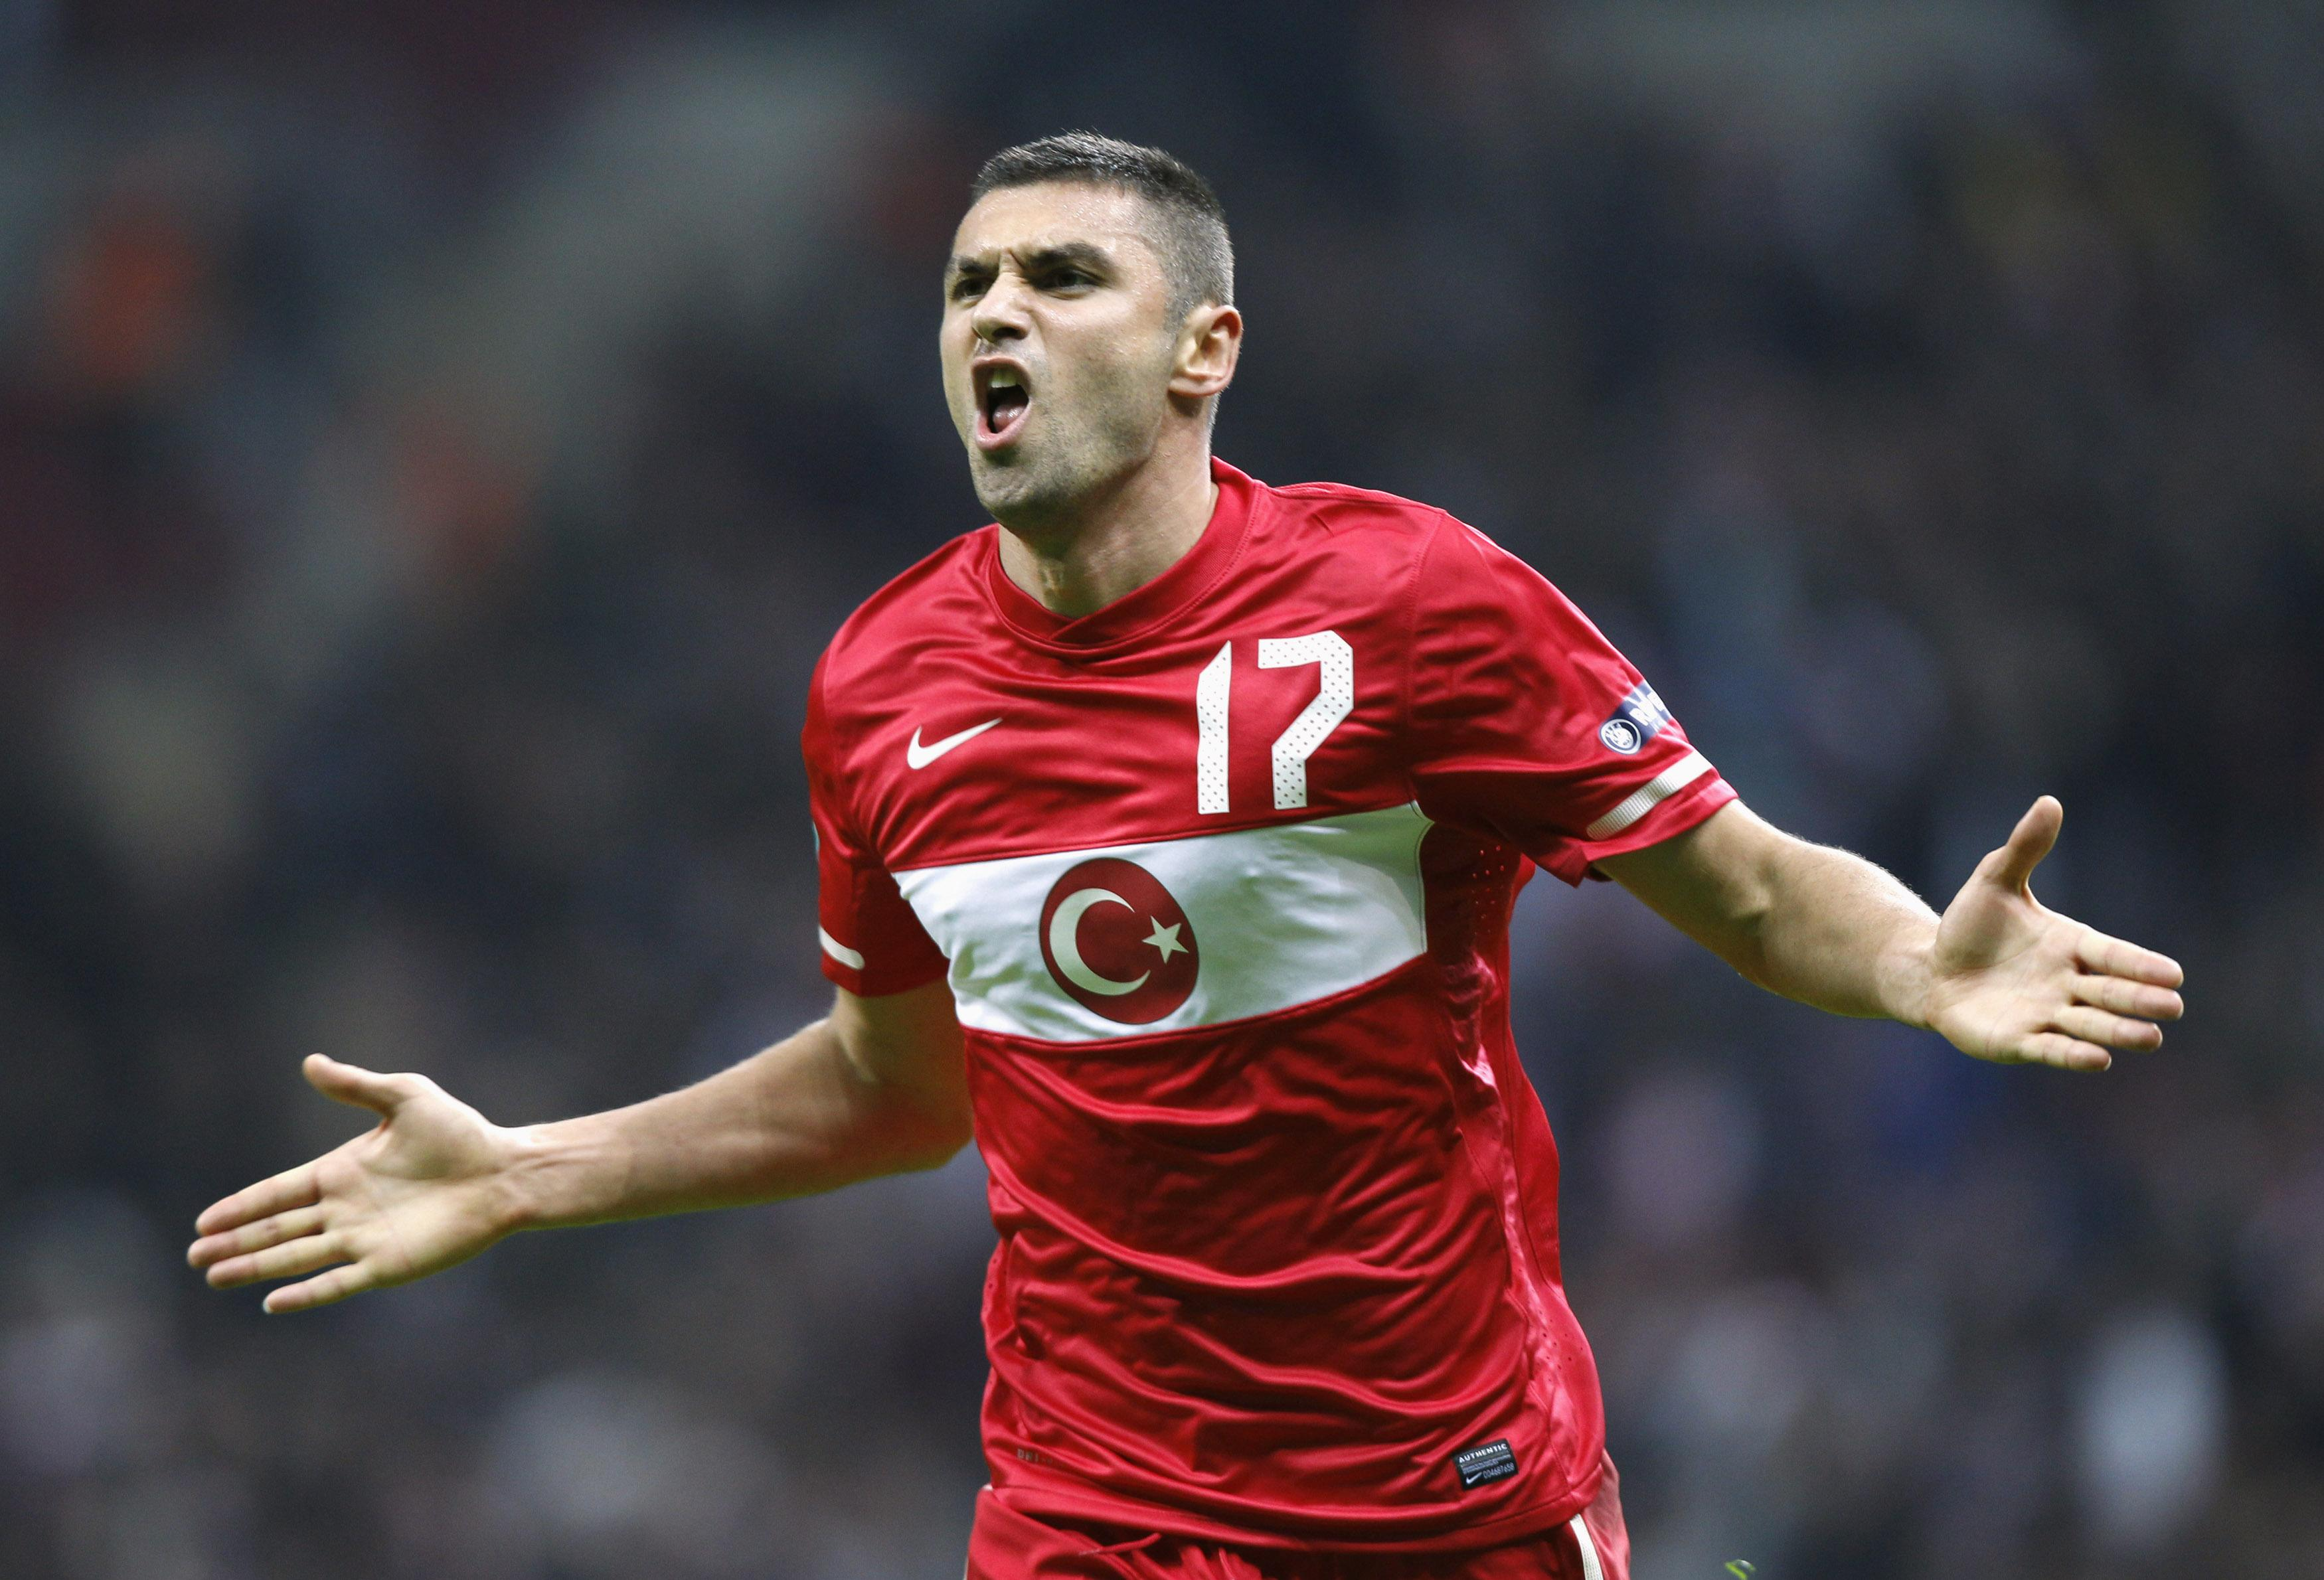 Turkey's Burak Yilmaz celebrates after scoring a goal against Azerbaijan during their Euro 2012 qualifying Group A soccer match at Turk Telekom Arena in Istanbul